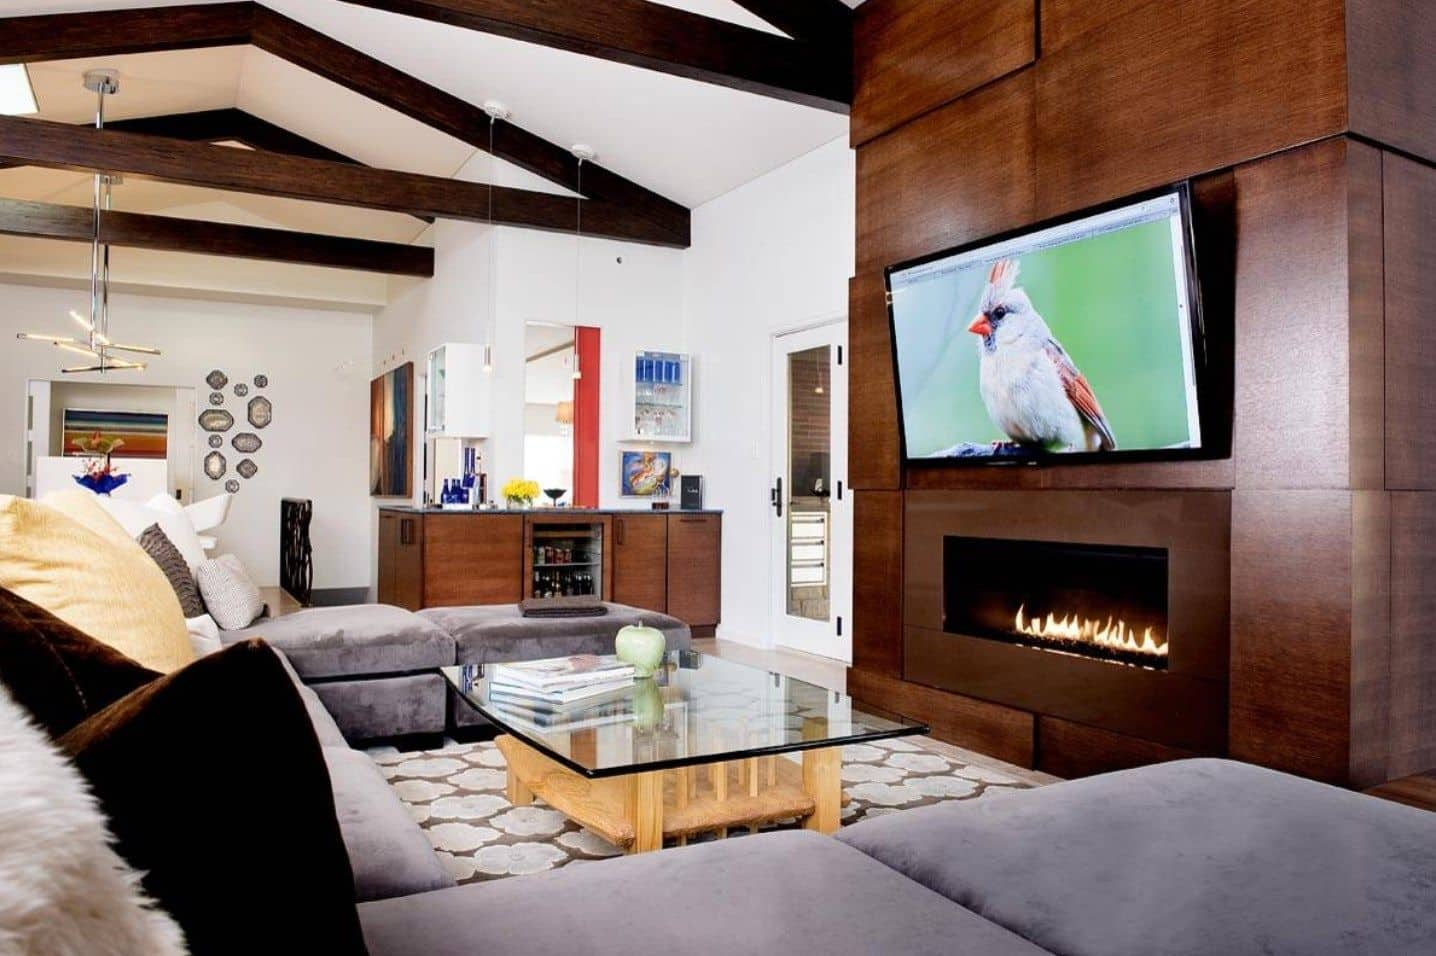 A U-shaped sectional with a glass top coffee table faces the huge television that's mounted above the fireplace in this living room with a vaulted ceiling.